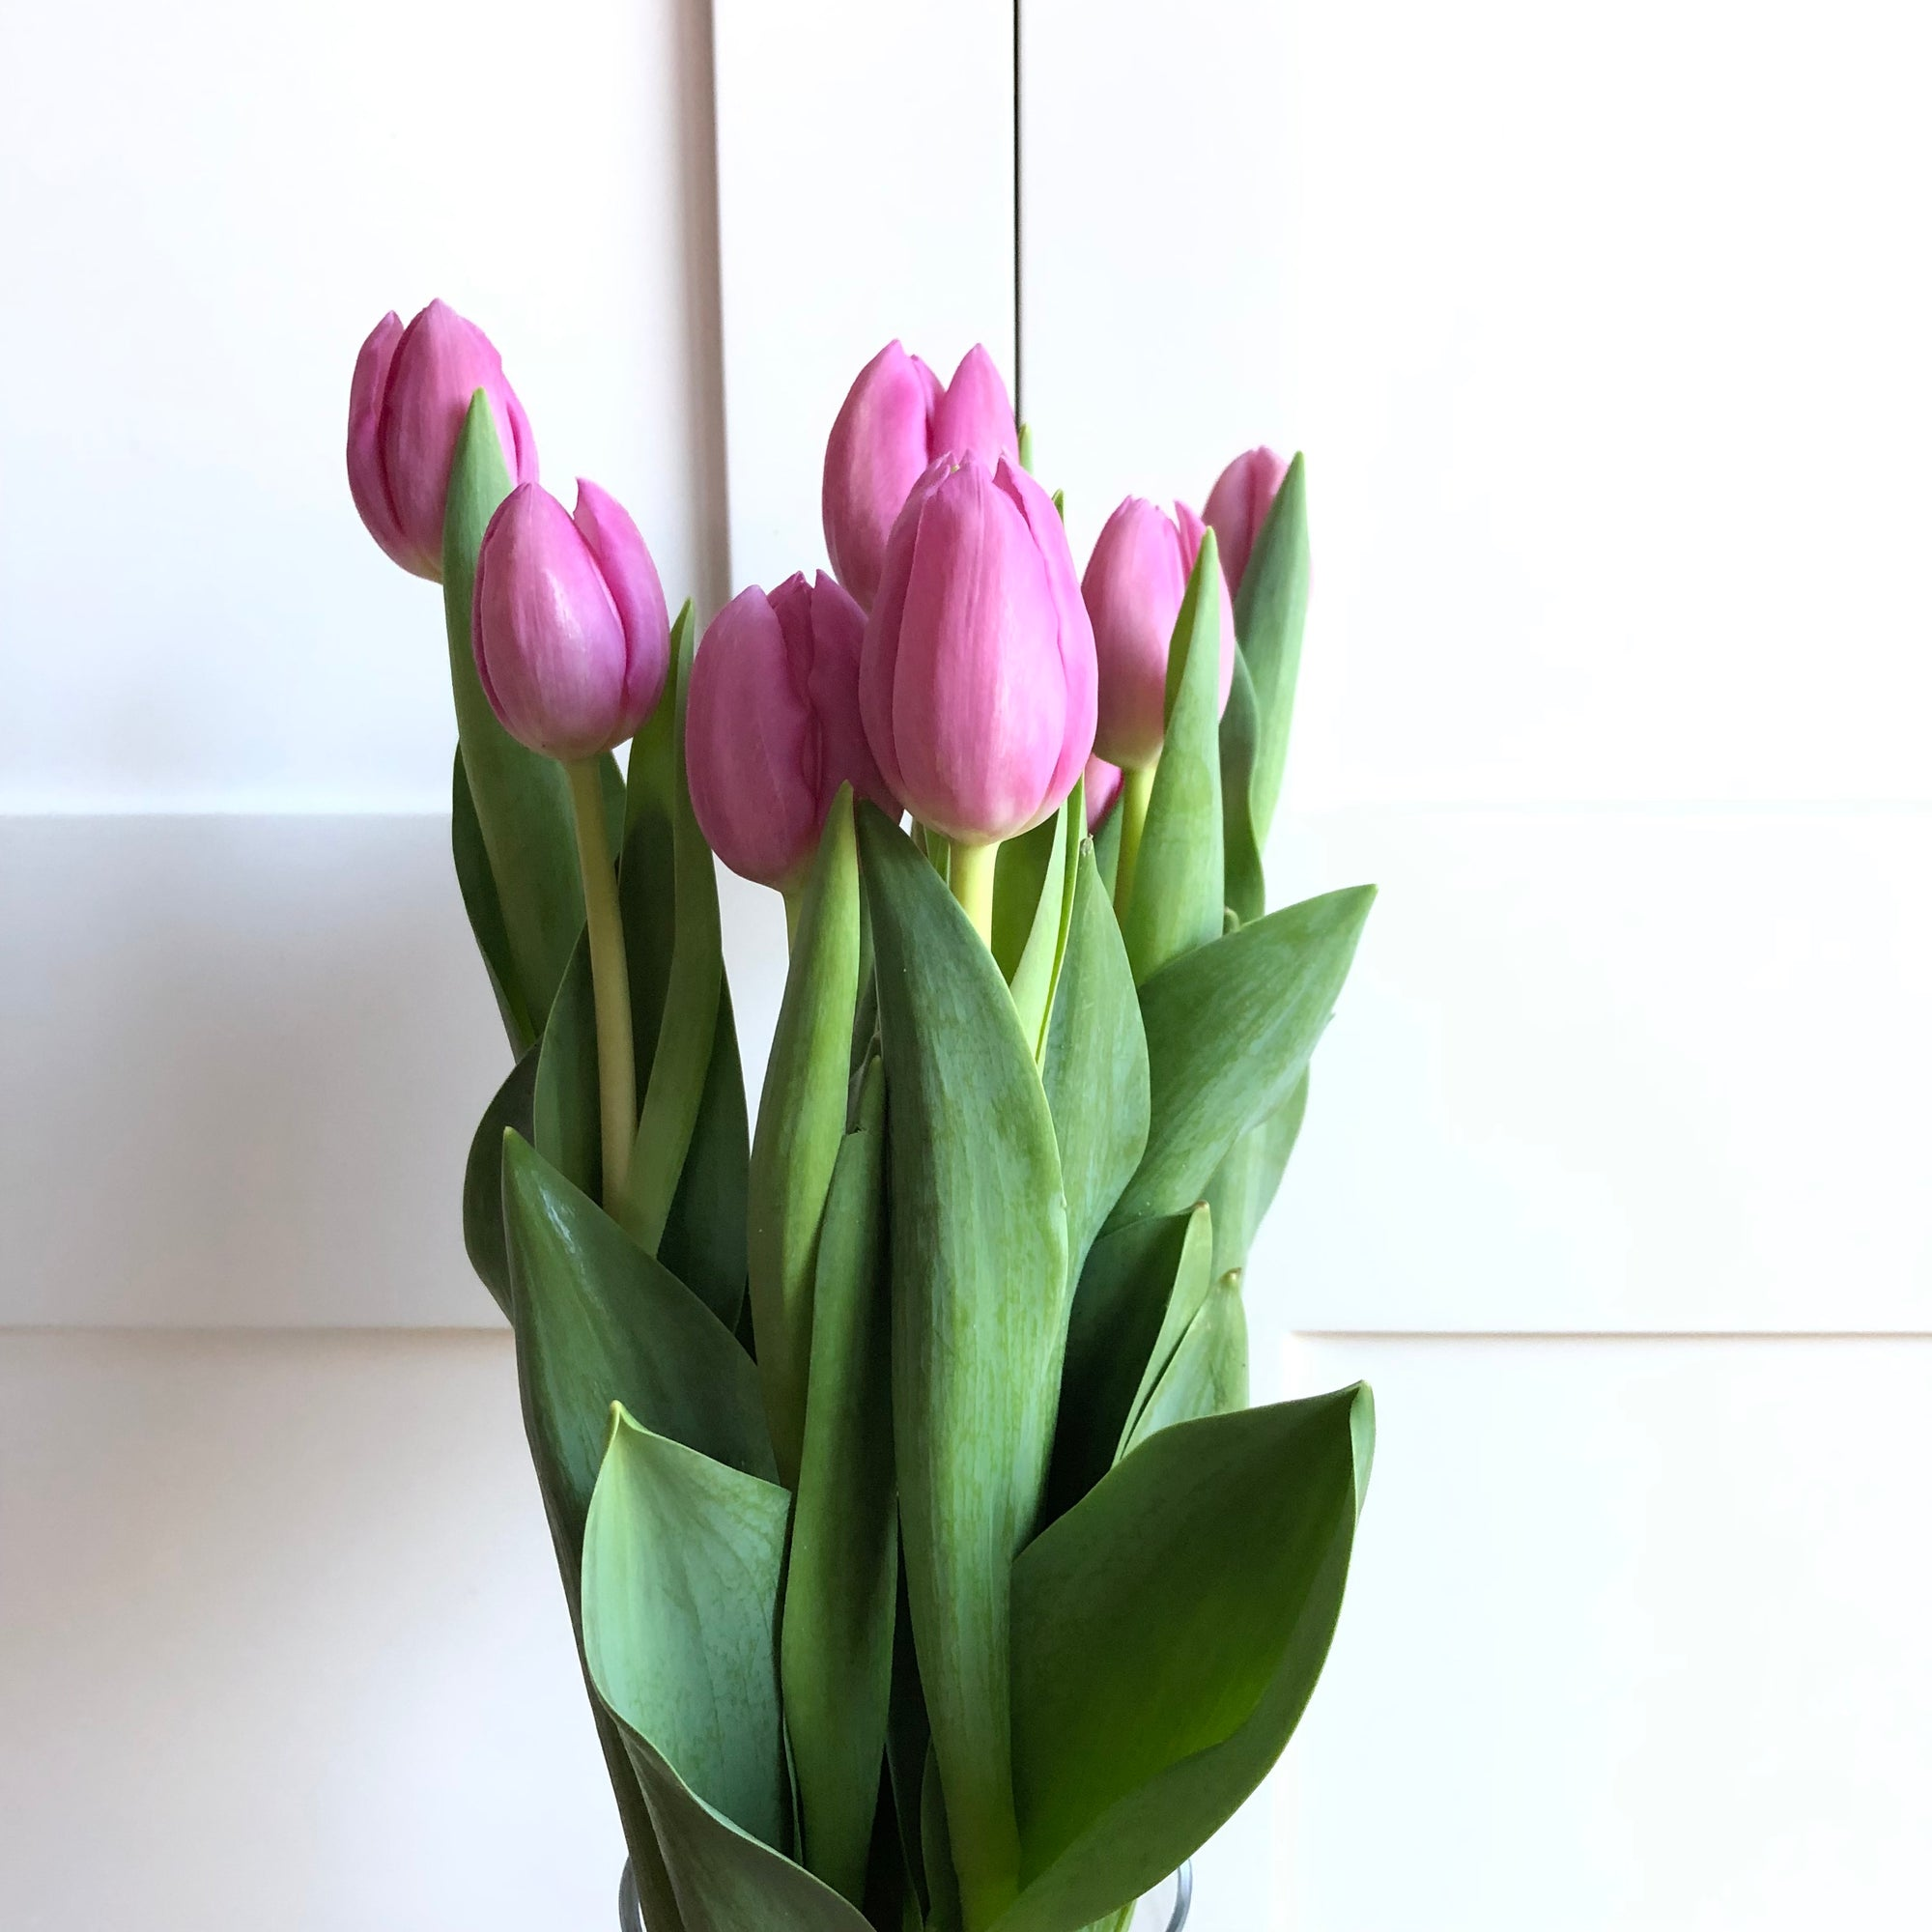 Tulips from Sydney Flower Markets